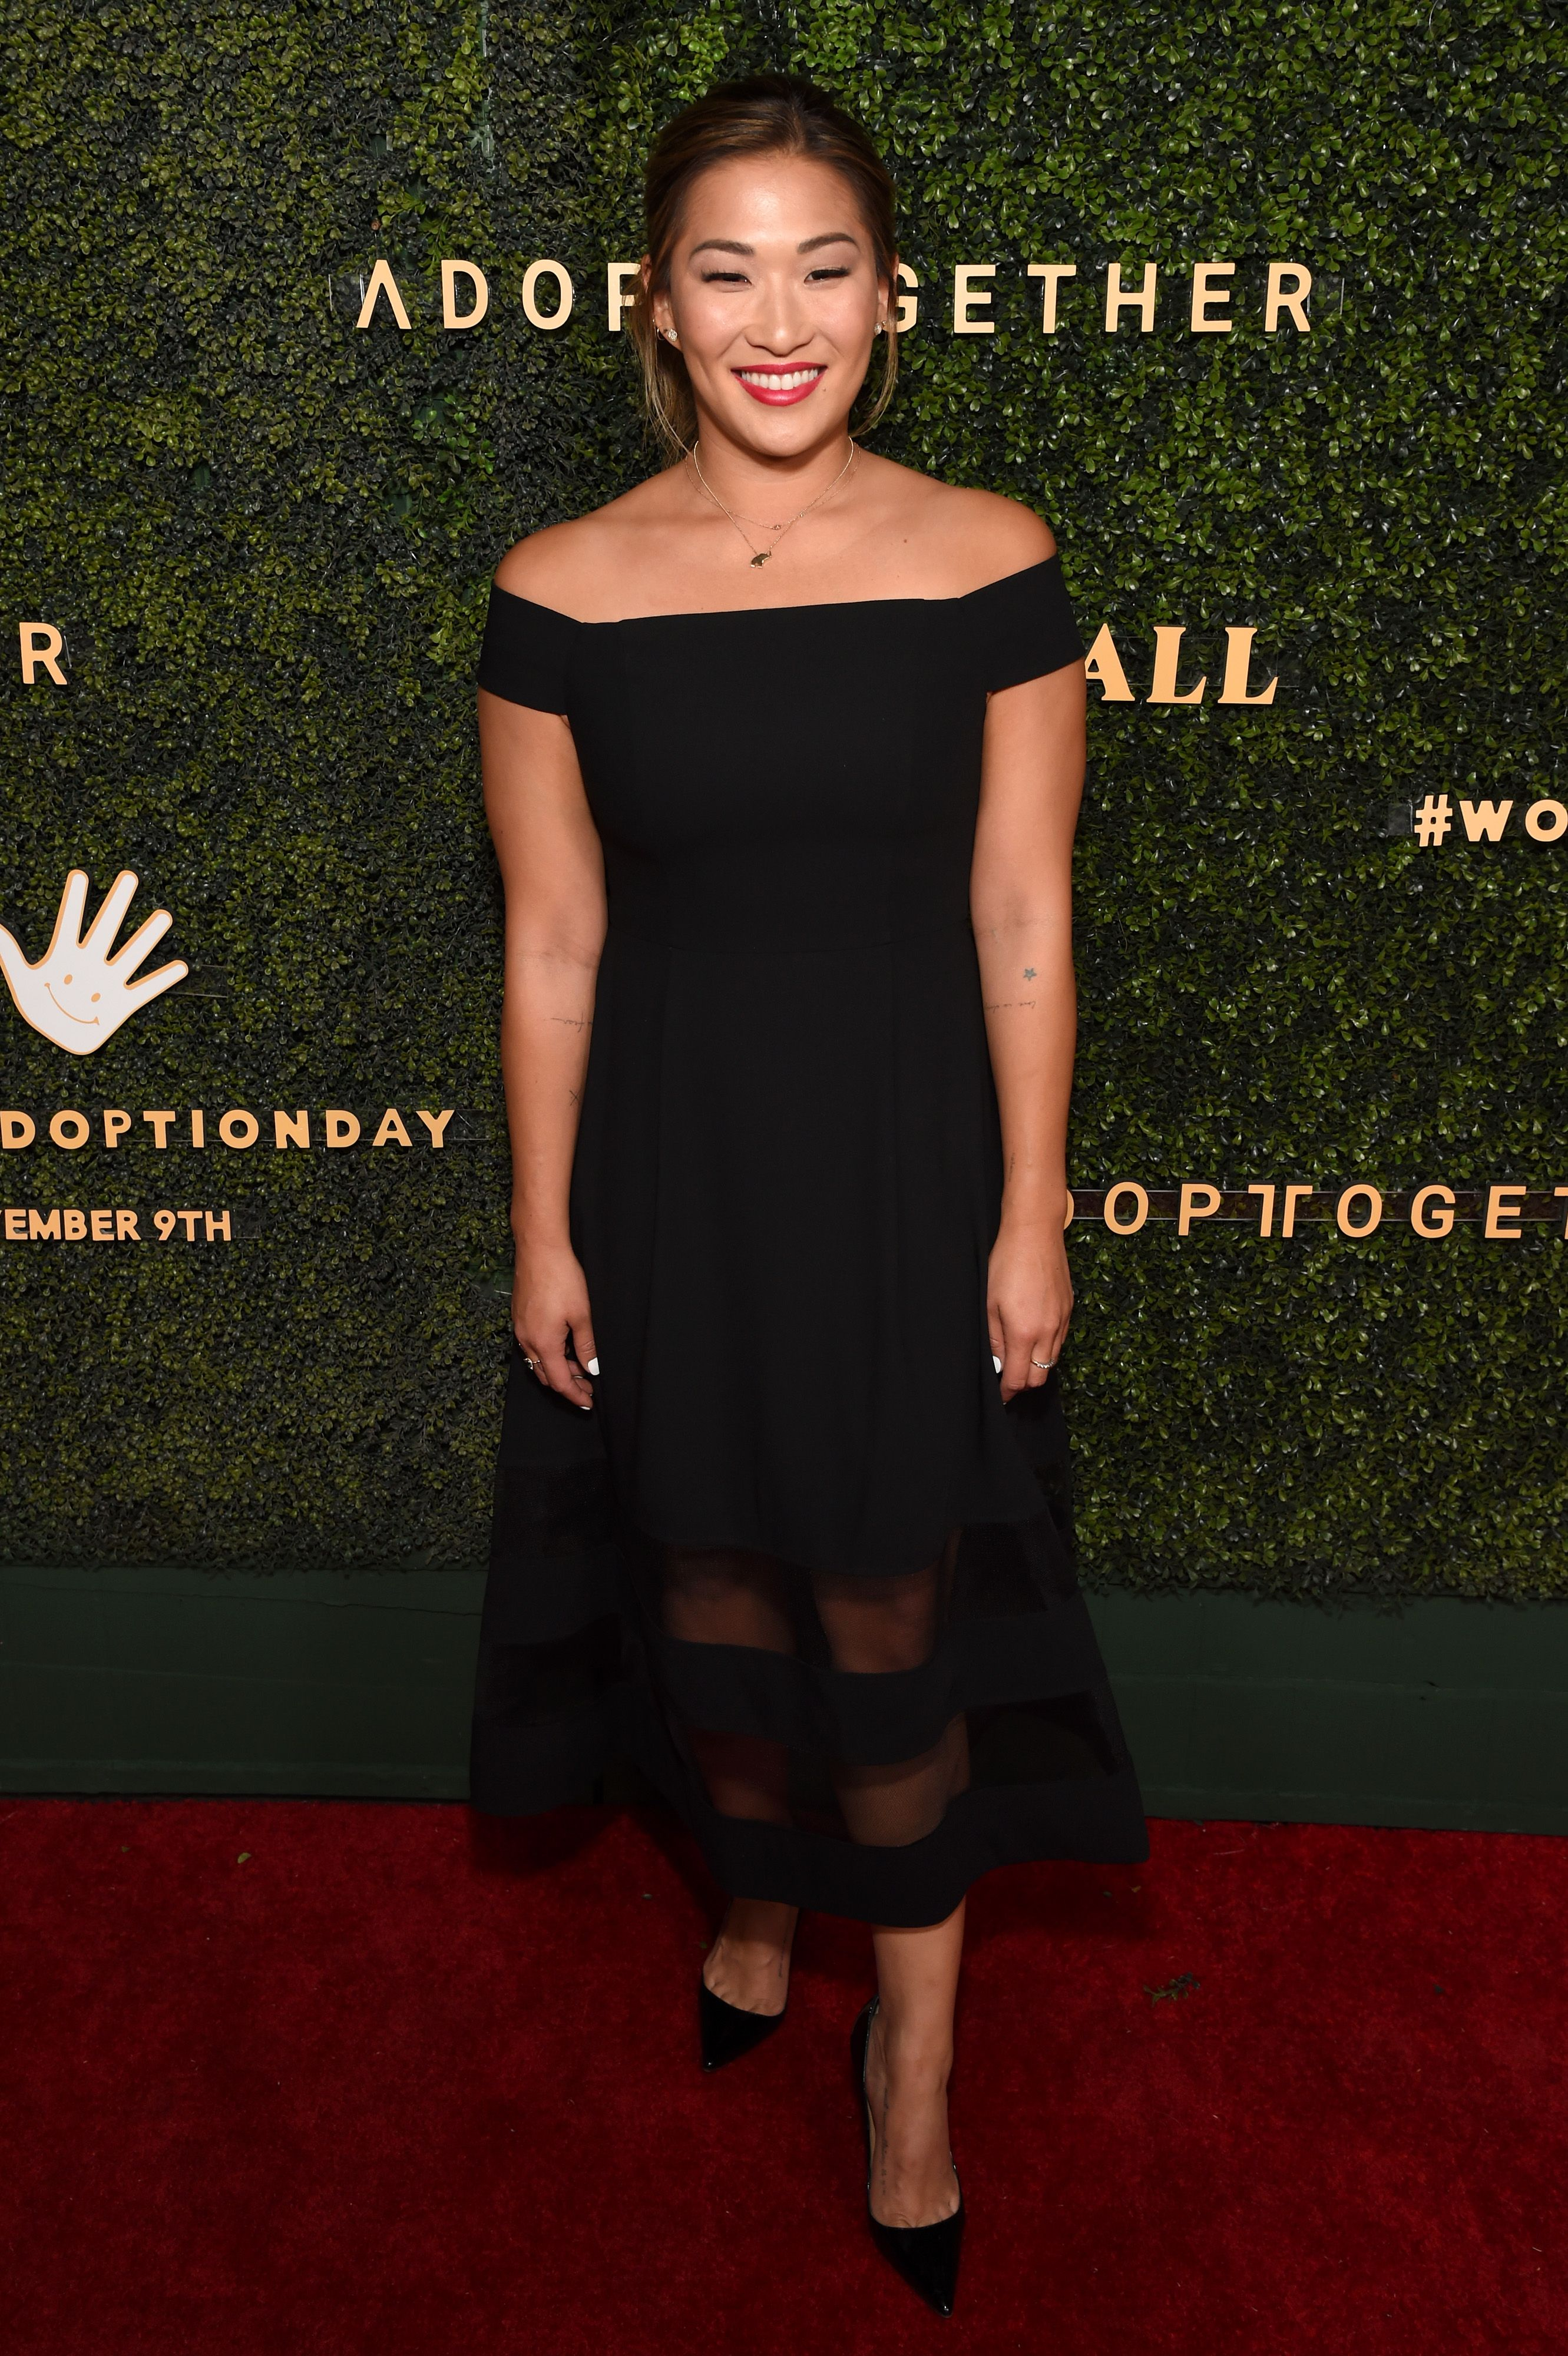 Jenna Ushkowitz at the 5th Adopt Together Baby Ball Gala on October 12, 2019 | Photo: Getty Images